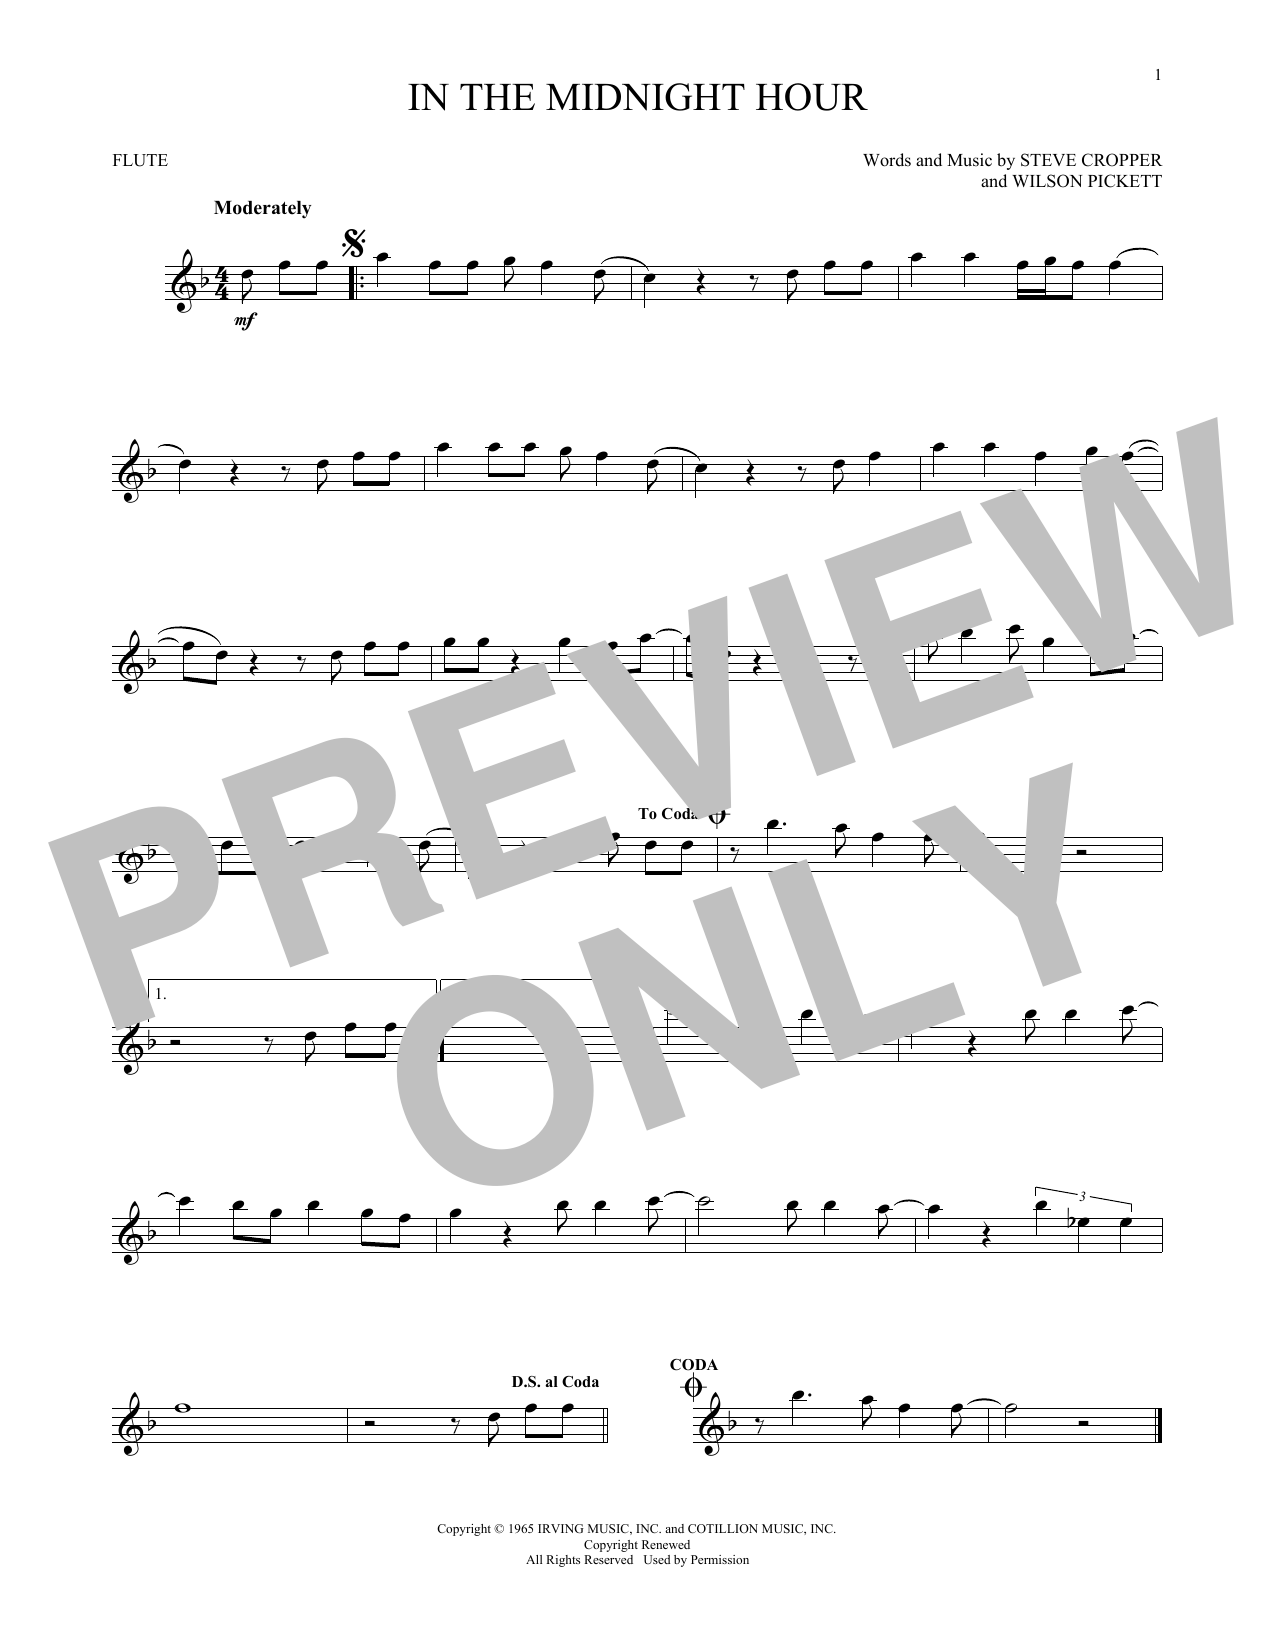 In The Midnight Hour (Flute Solo)